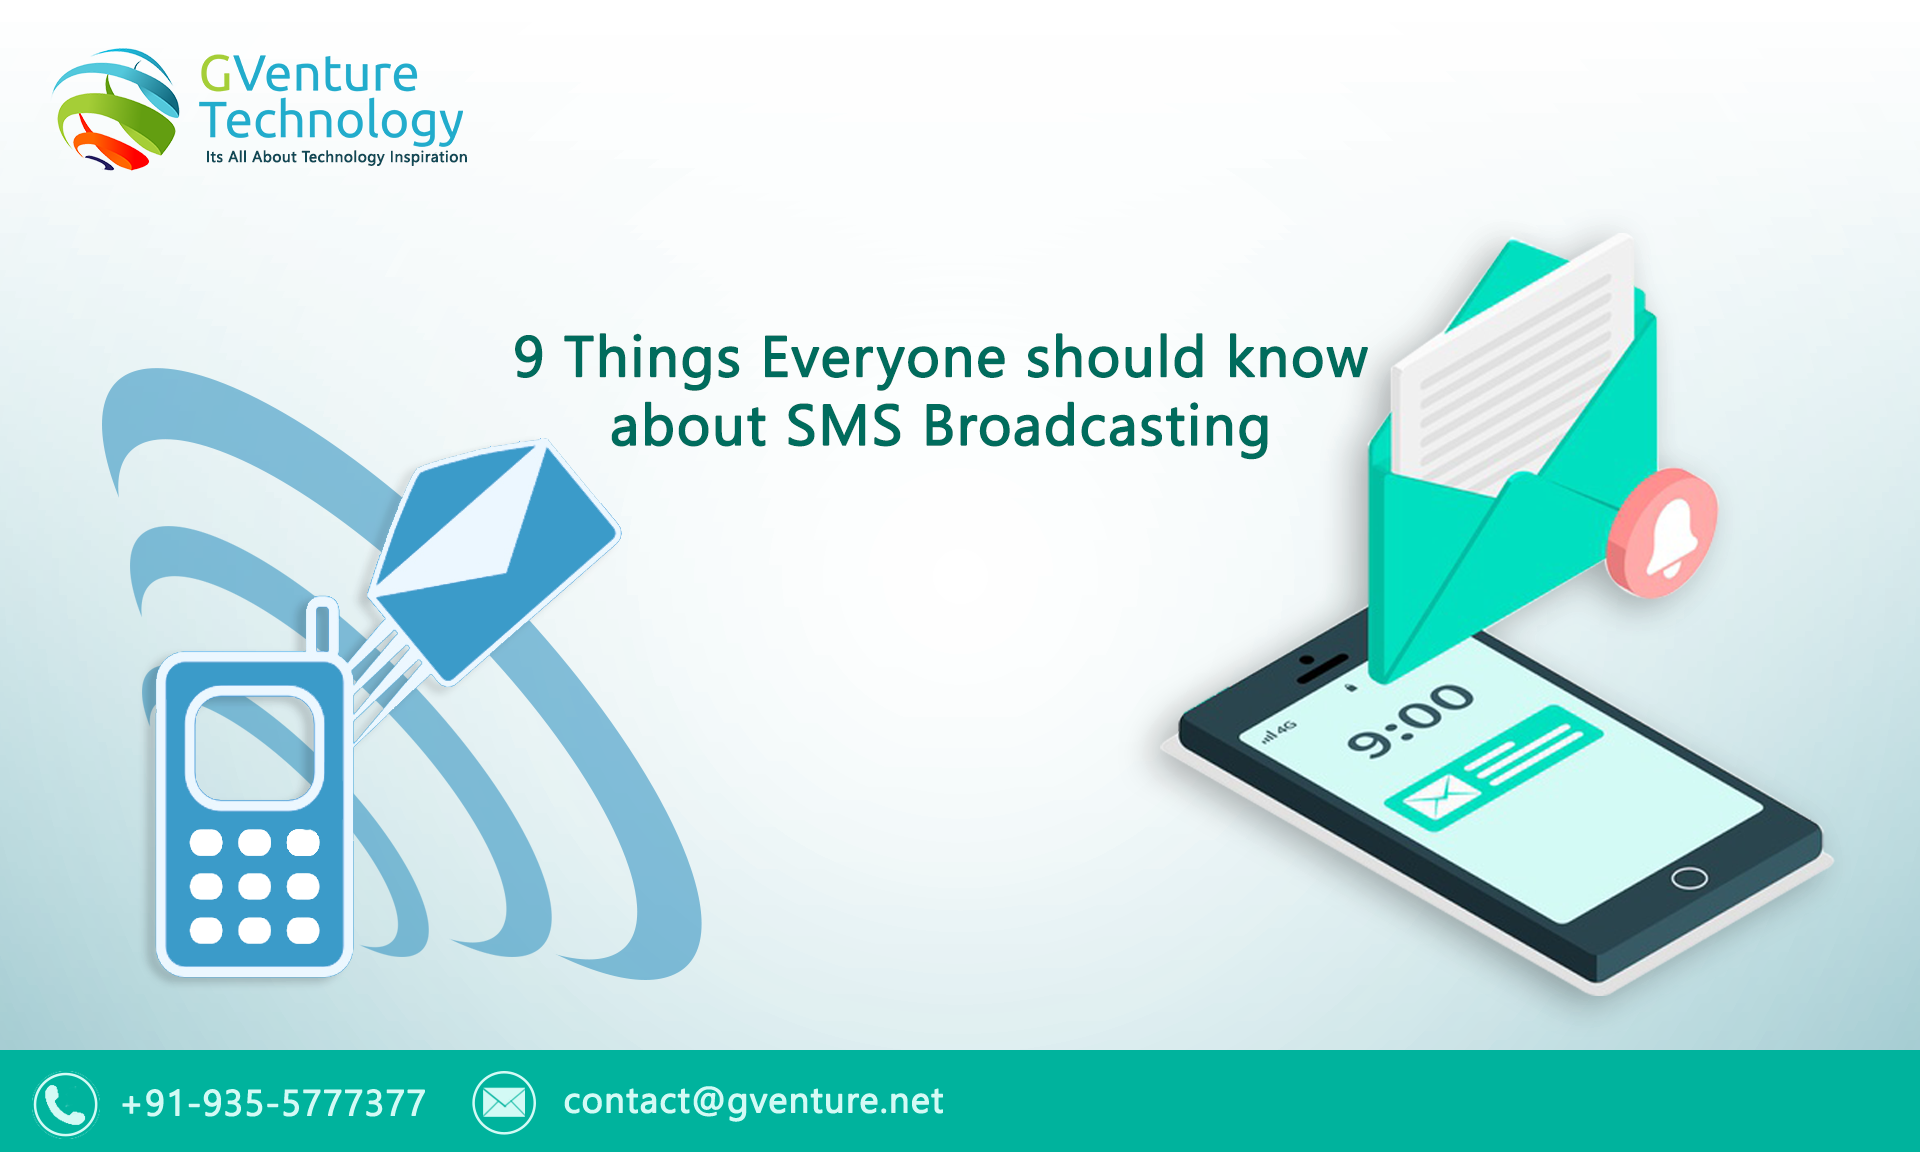 9 Things Everyone should know about SMS Broadcasting